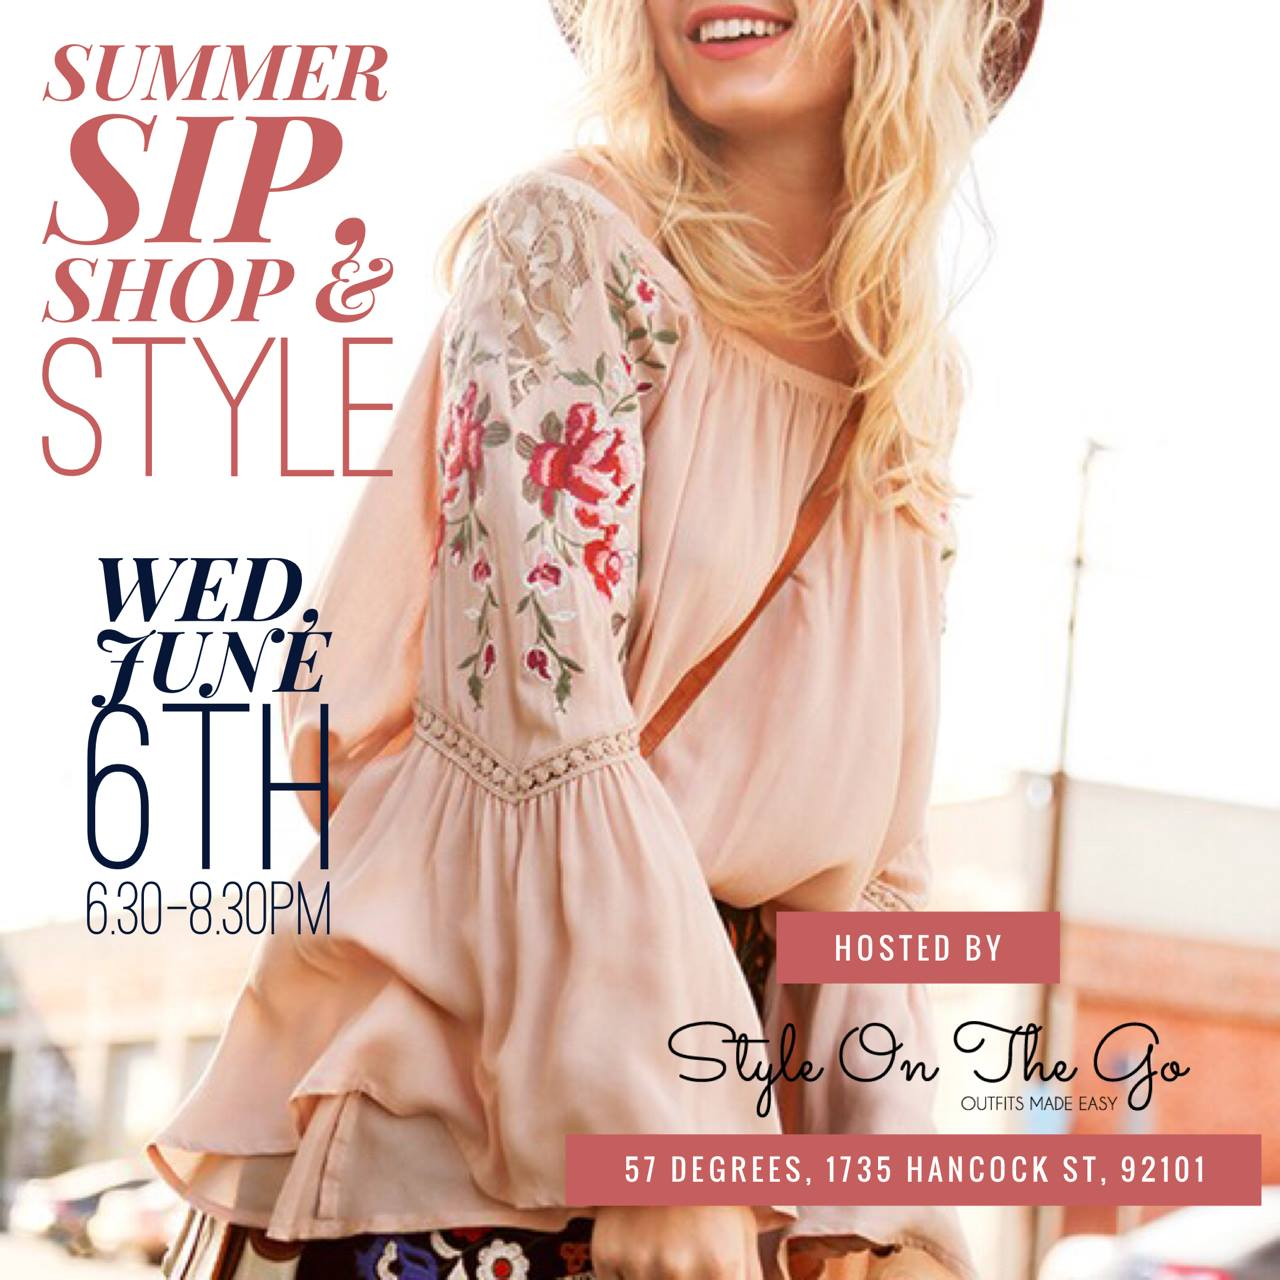 Kick off your summer shopping and join us for a glass (or two) of wine! We will be featuring our latest eco-friendly fashions, vegan cosmetics, and fair trade accessories. A portion of our sales will be donated to the shelter bunnies at the  San Diego House Rabbit Society.  Get your tickets in advance  here.